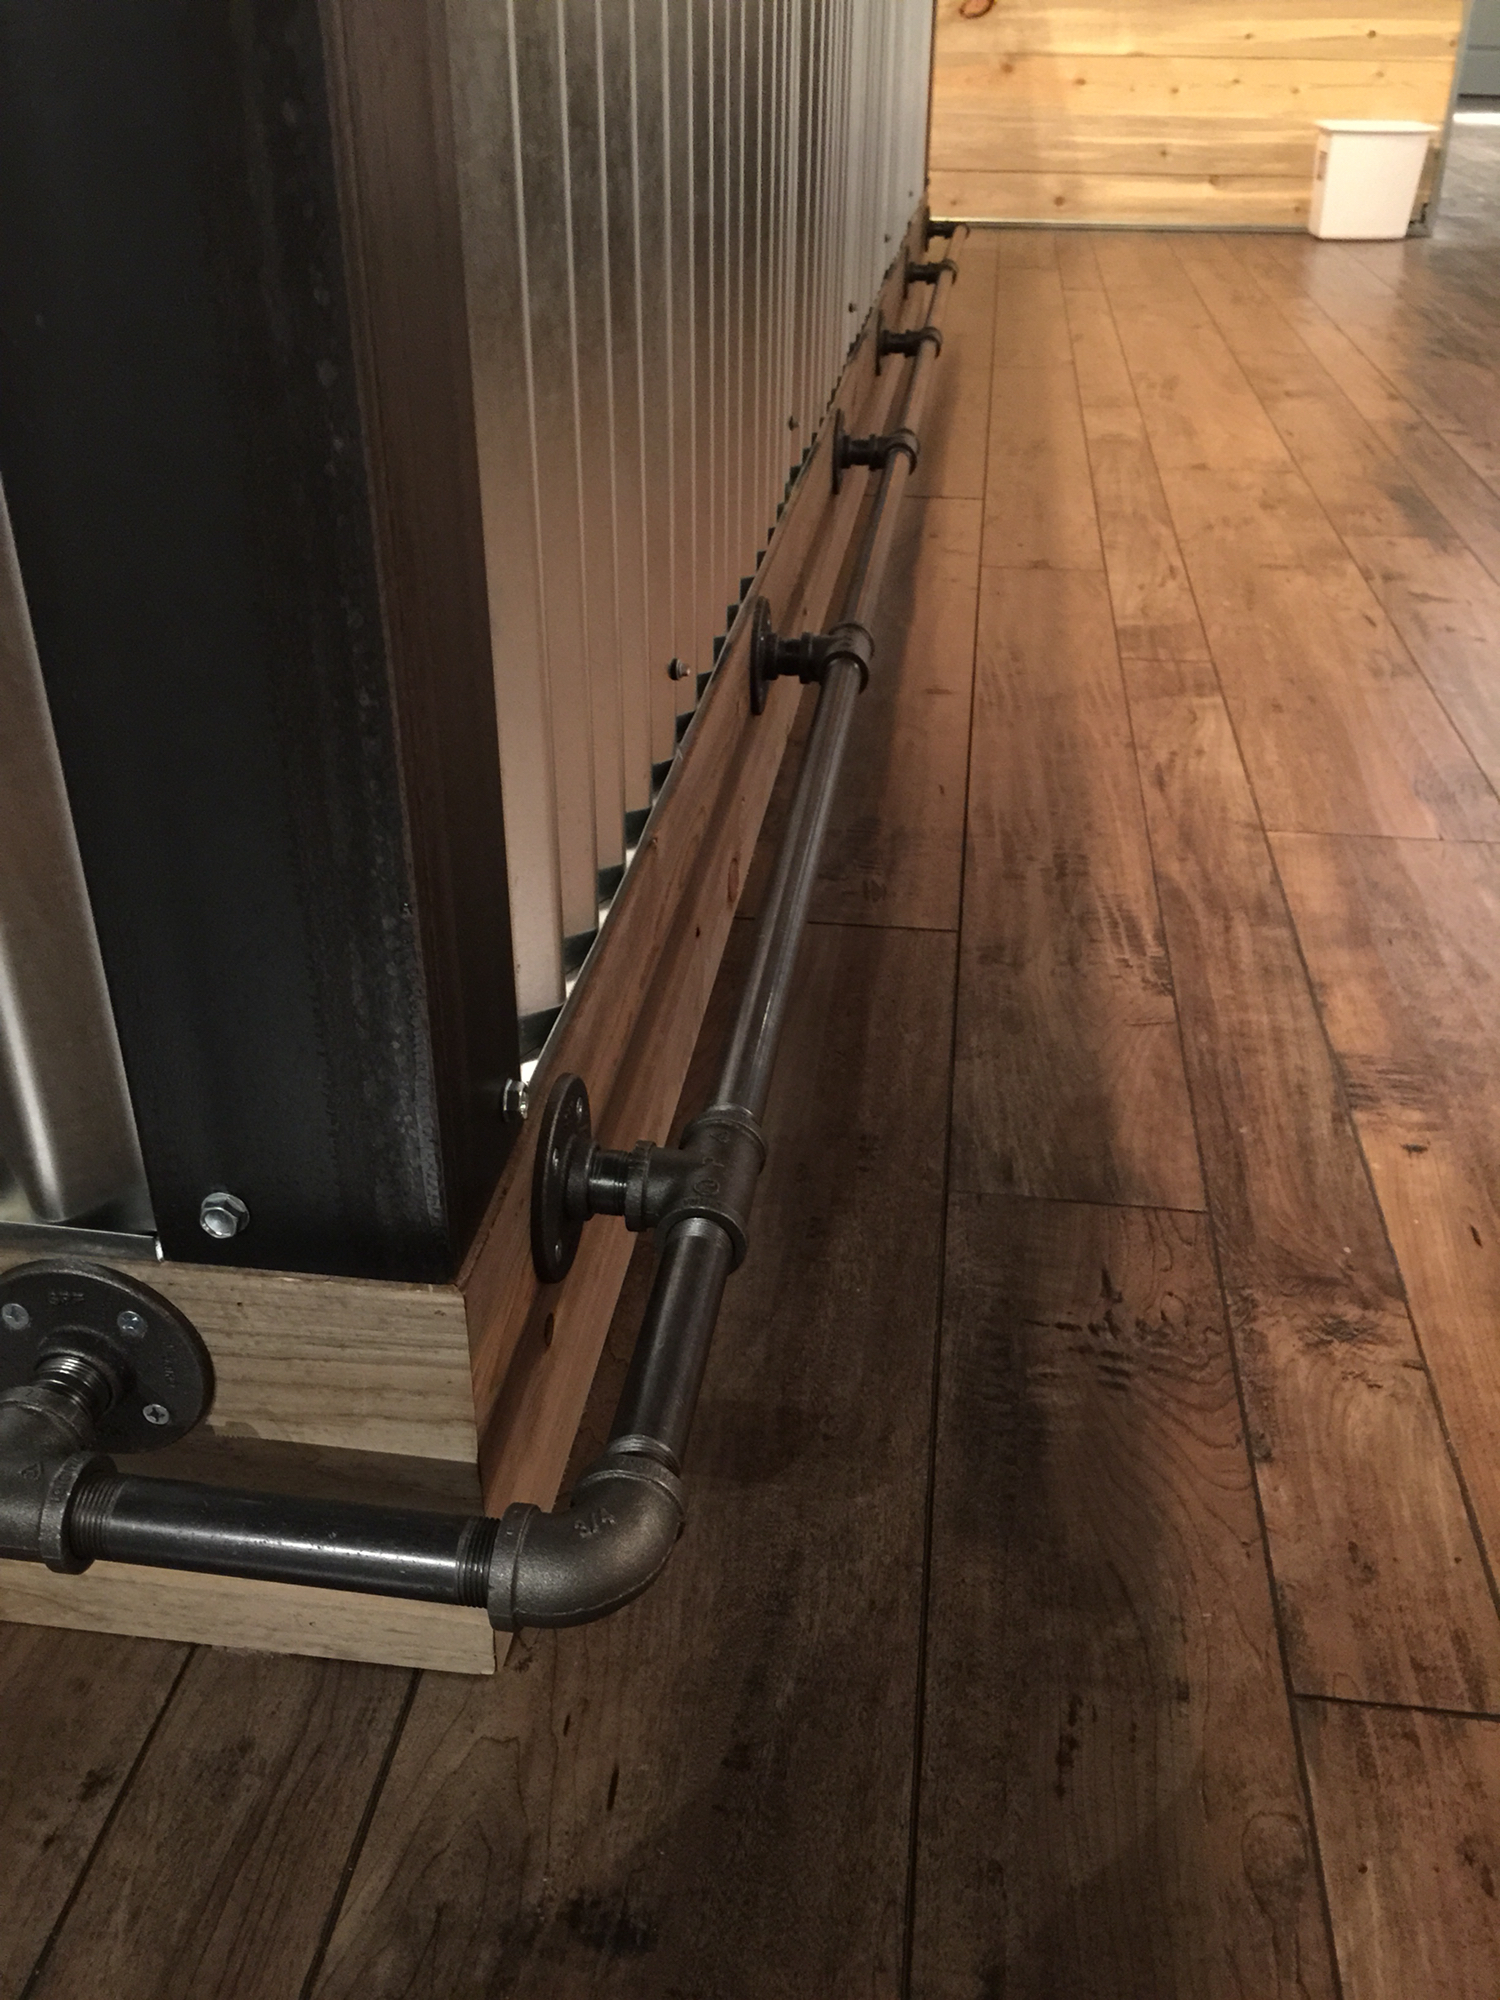 Gas pipe for basement bar foot rest.